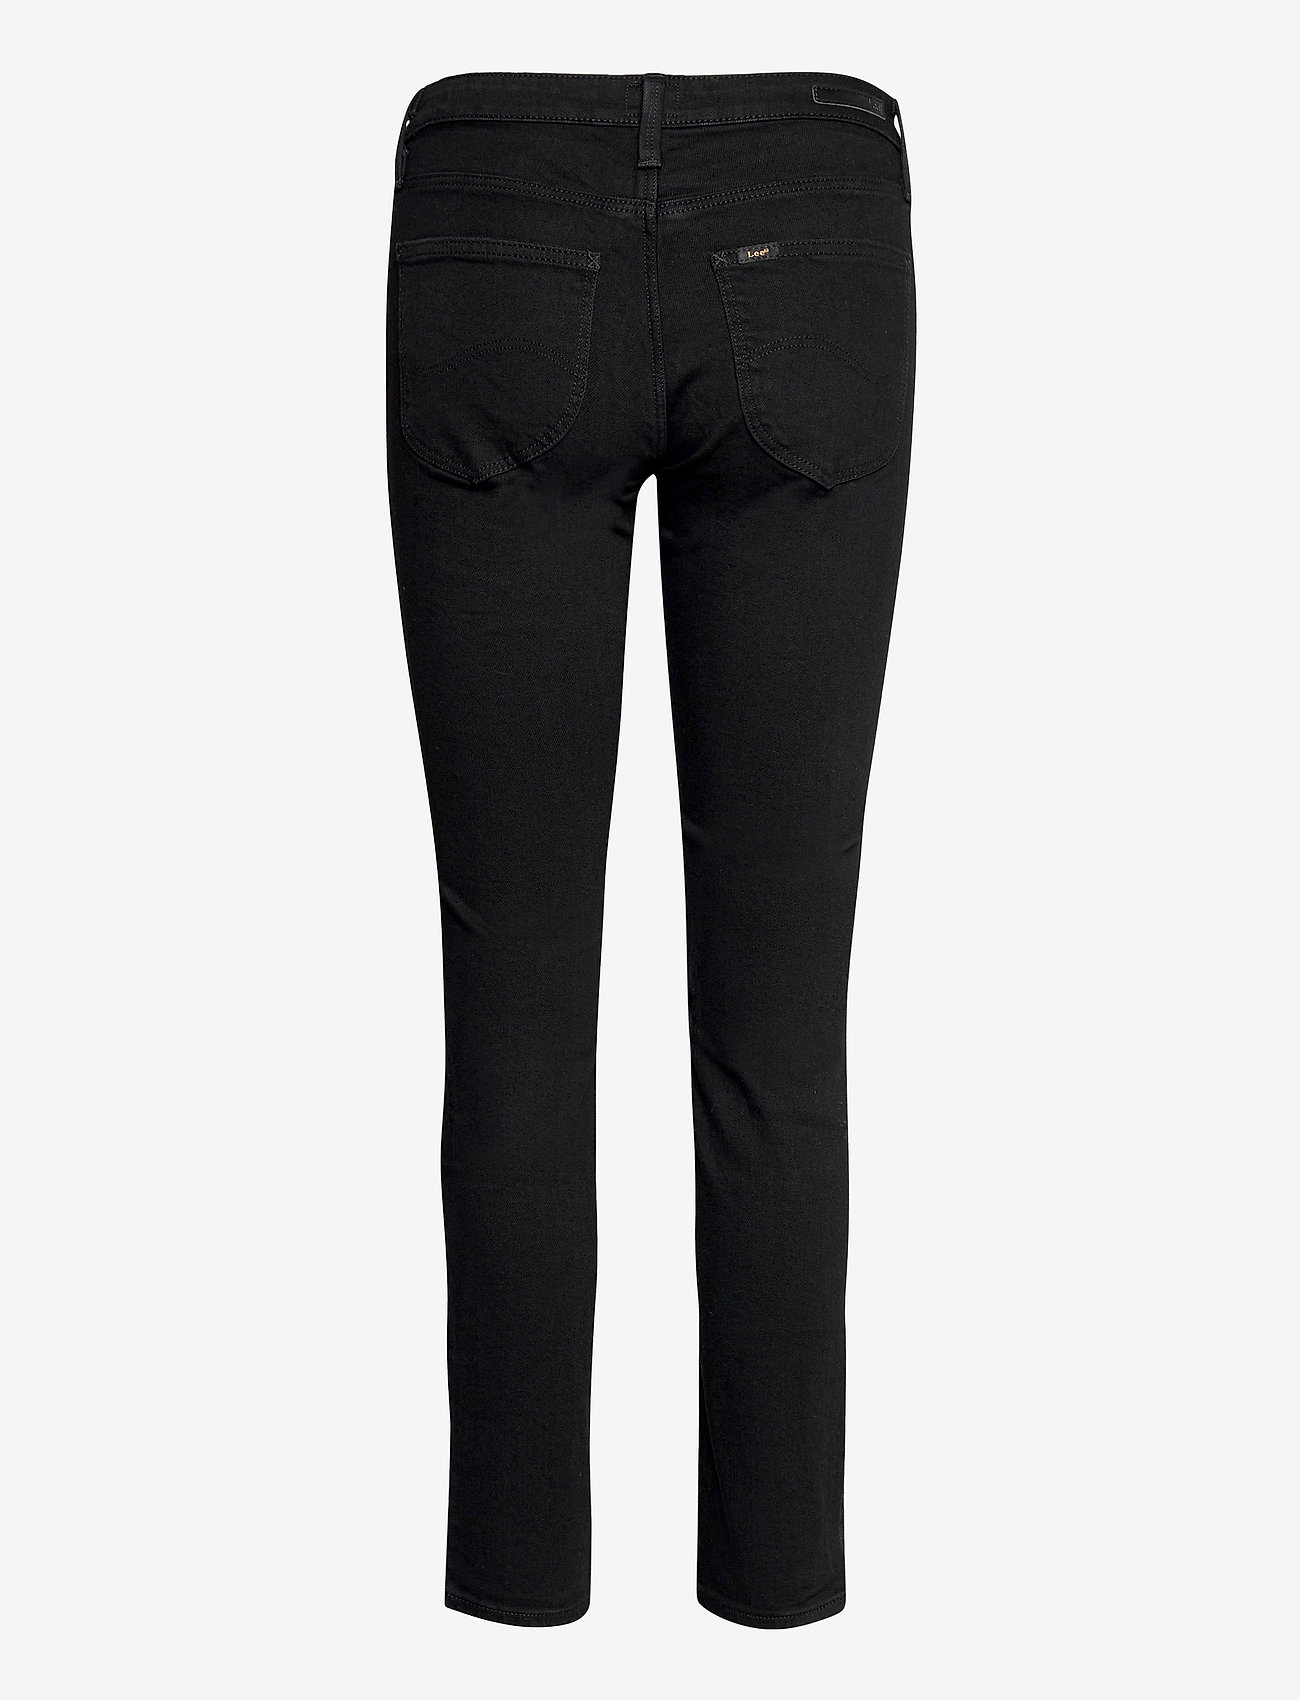 Lee Jeans - ELLY - slim jeans - black rinse - 1